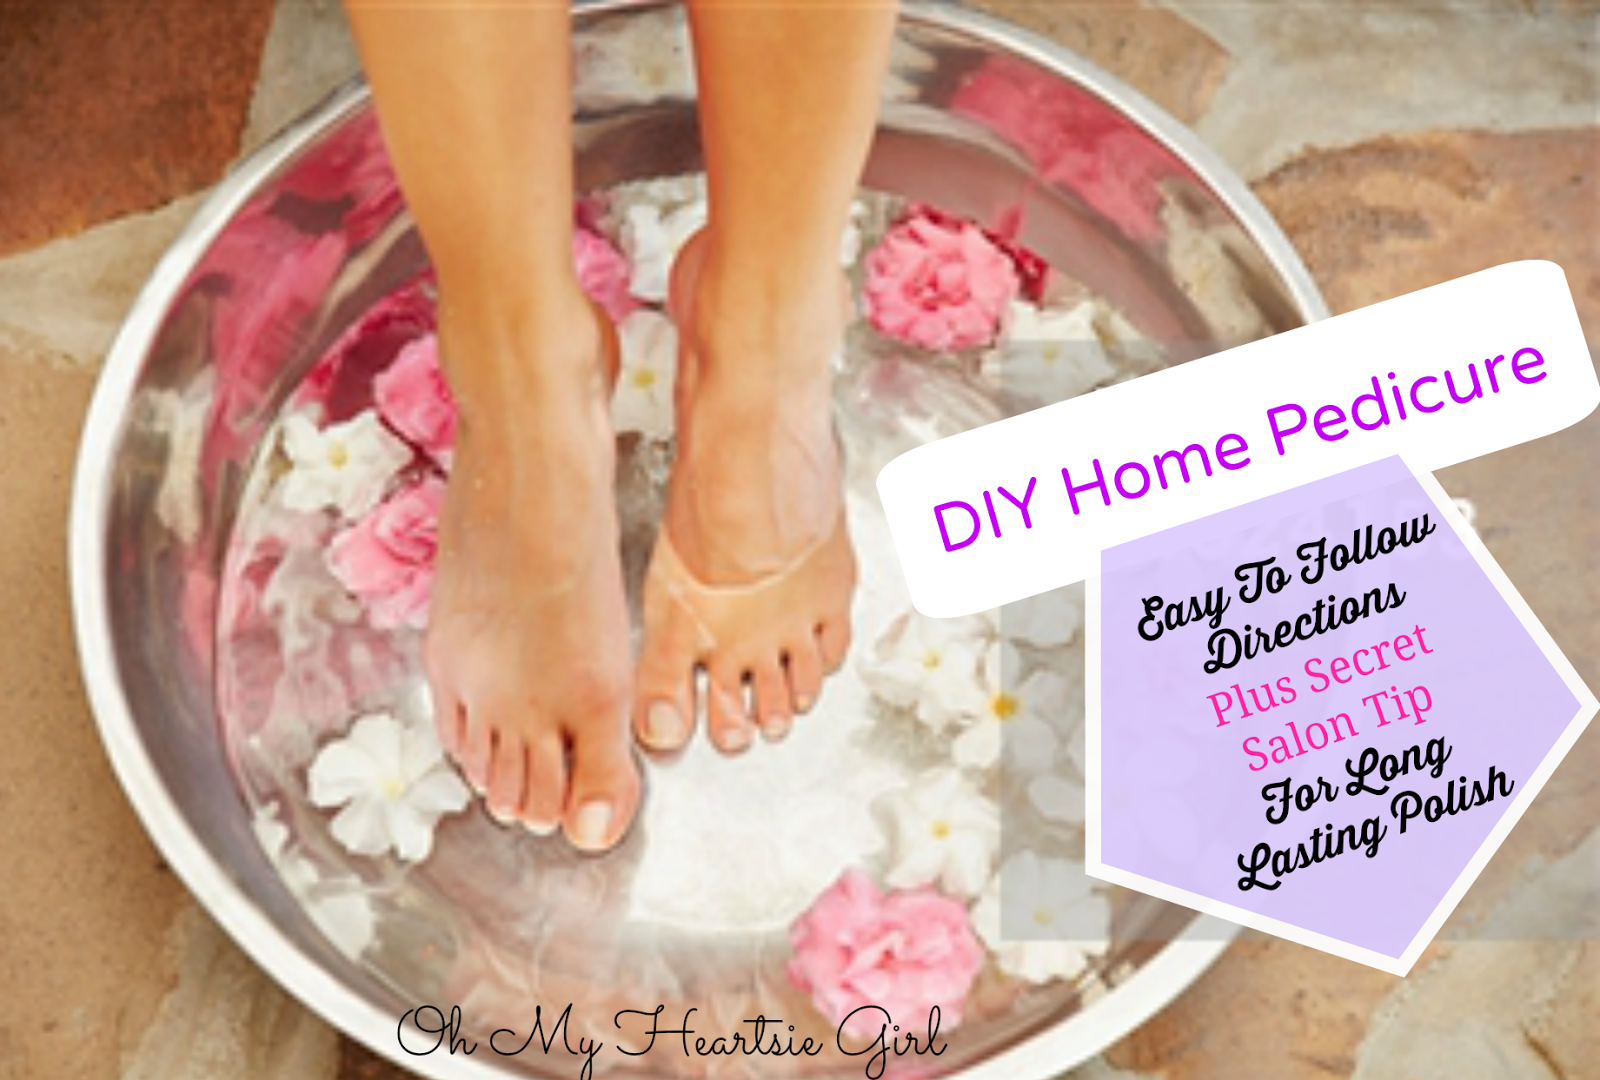 http://ohmyheartsiegirl.com/index.php/save-money-give-salon-quality-pedicure-home/